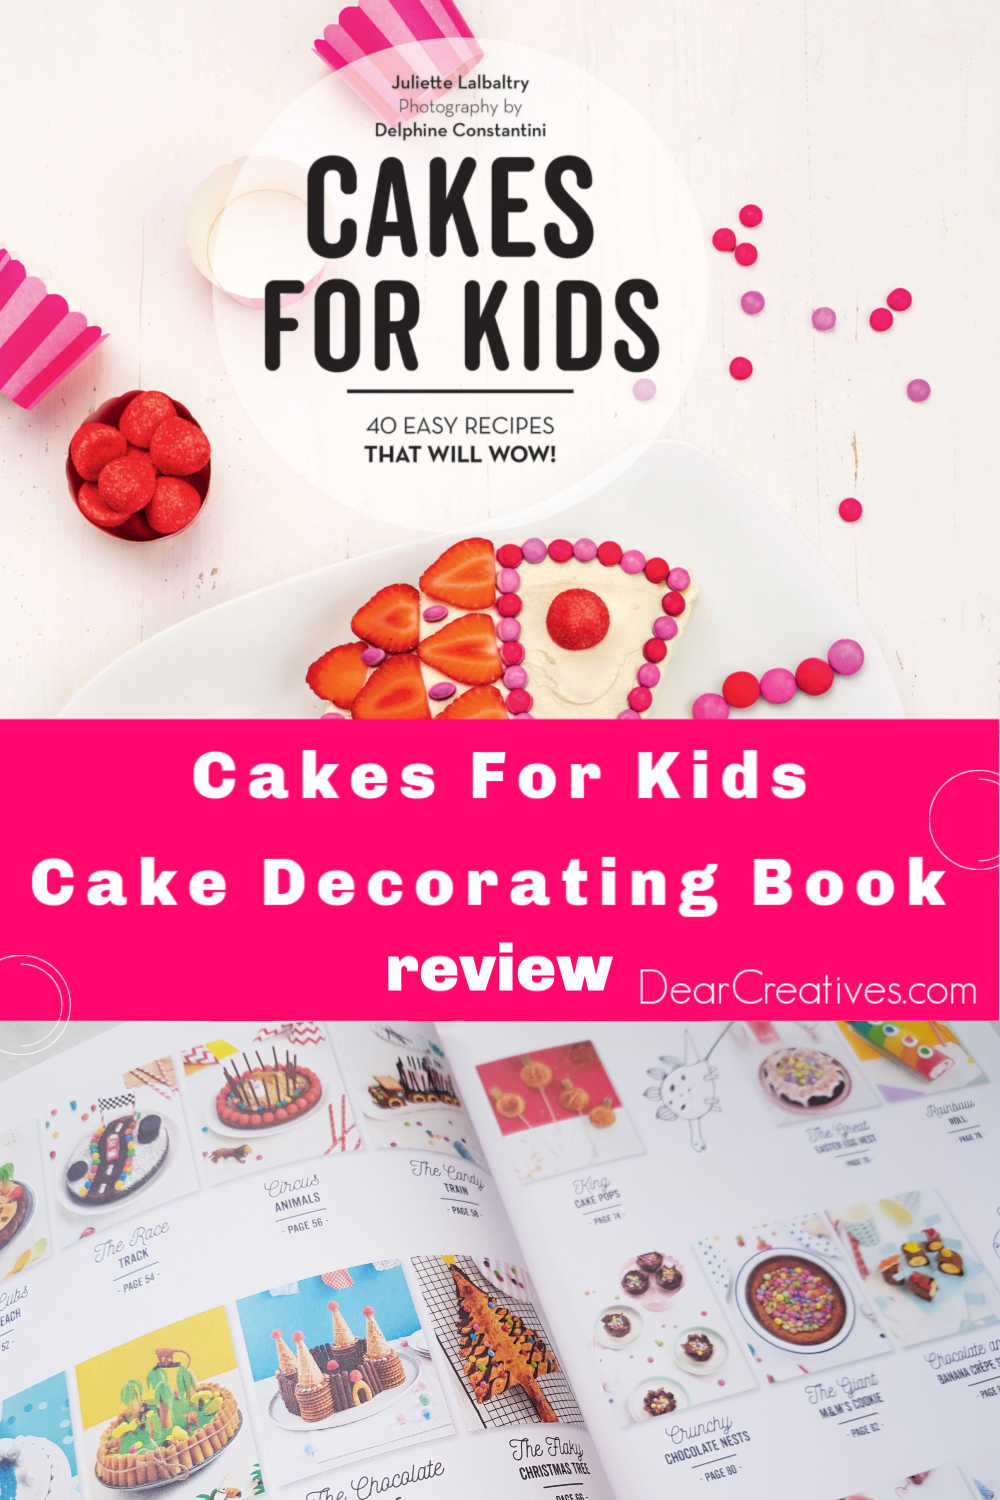 Cakes For Kids Cookbook Release, Review + Giveaway!